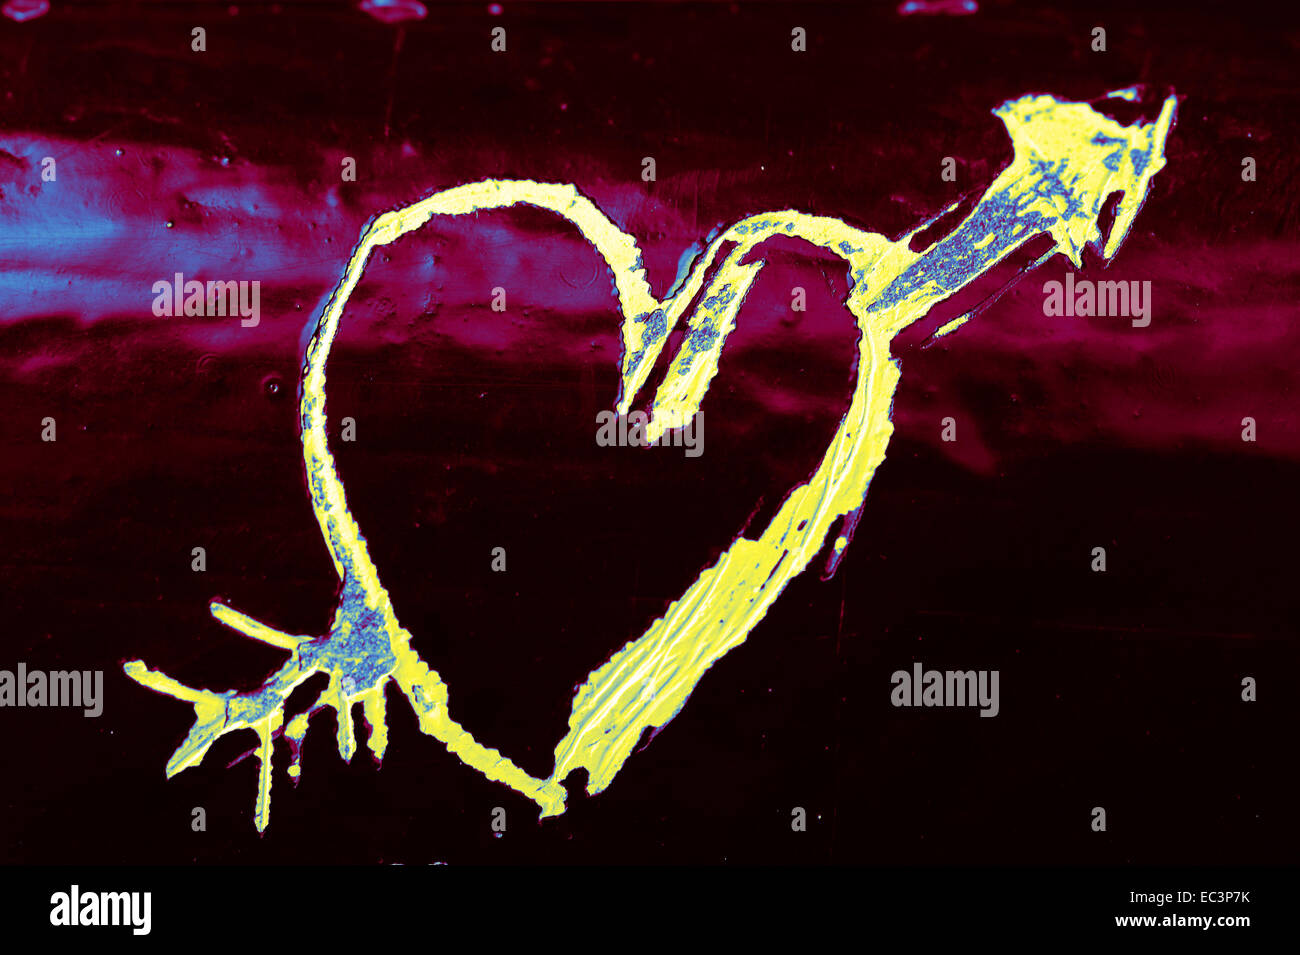 Scratched heart - Stock Image